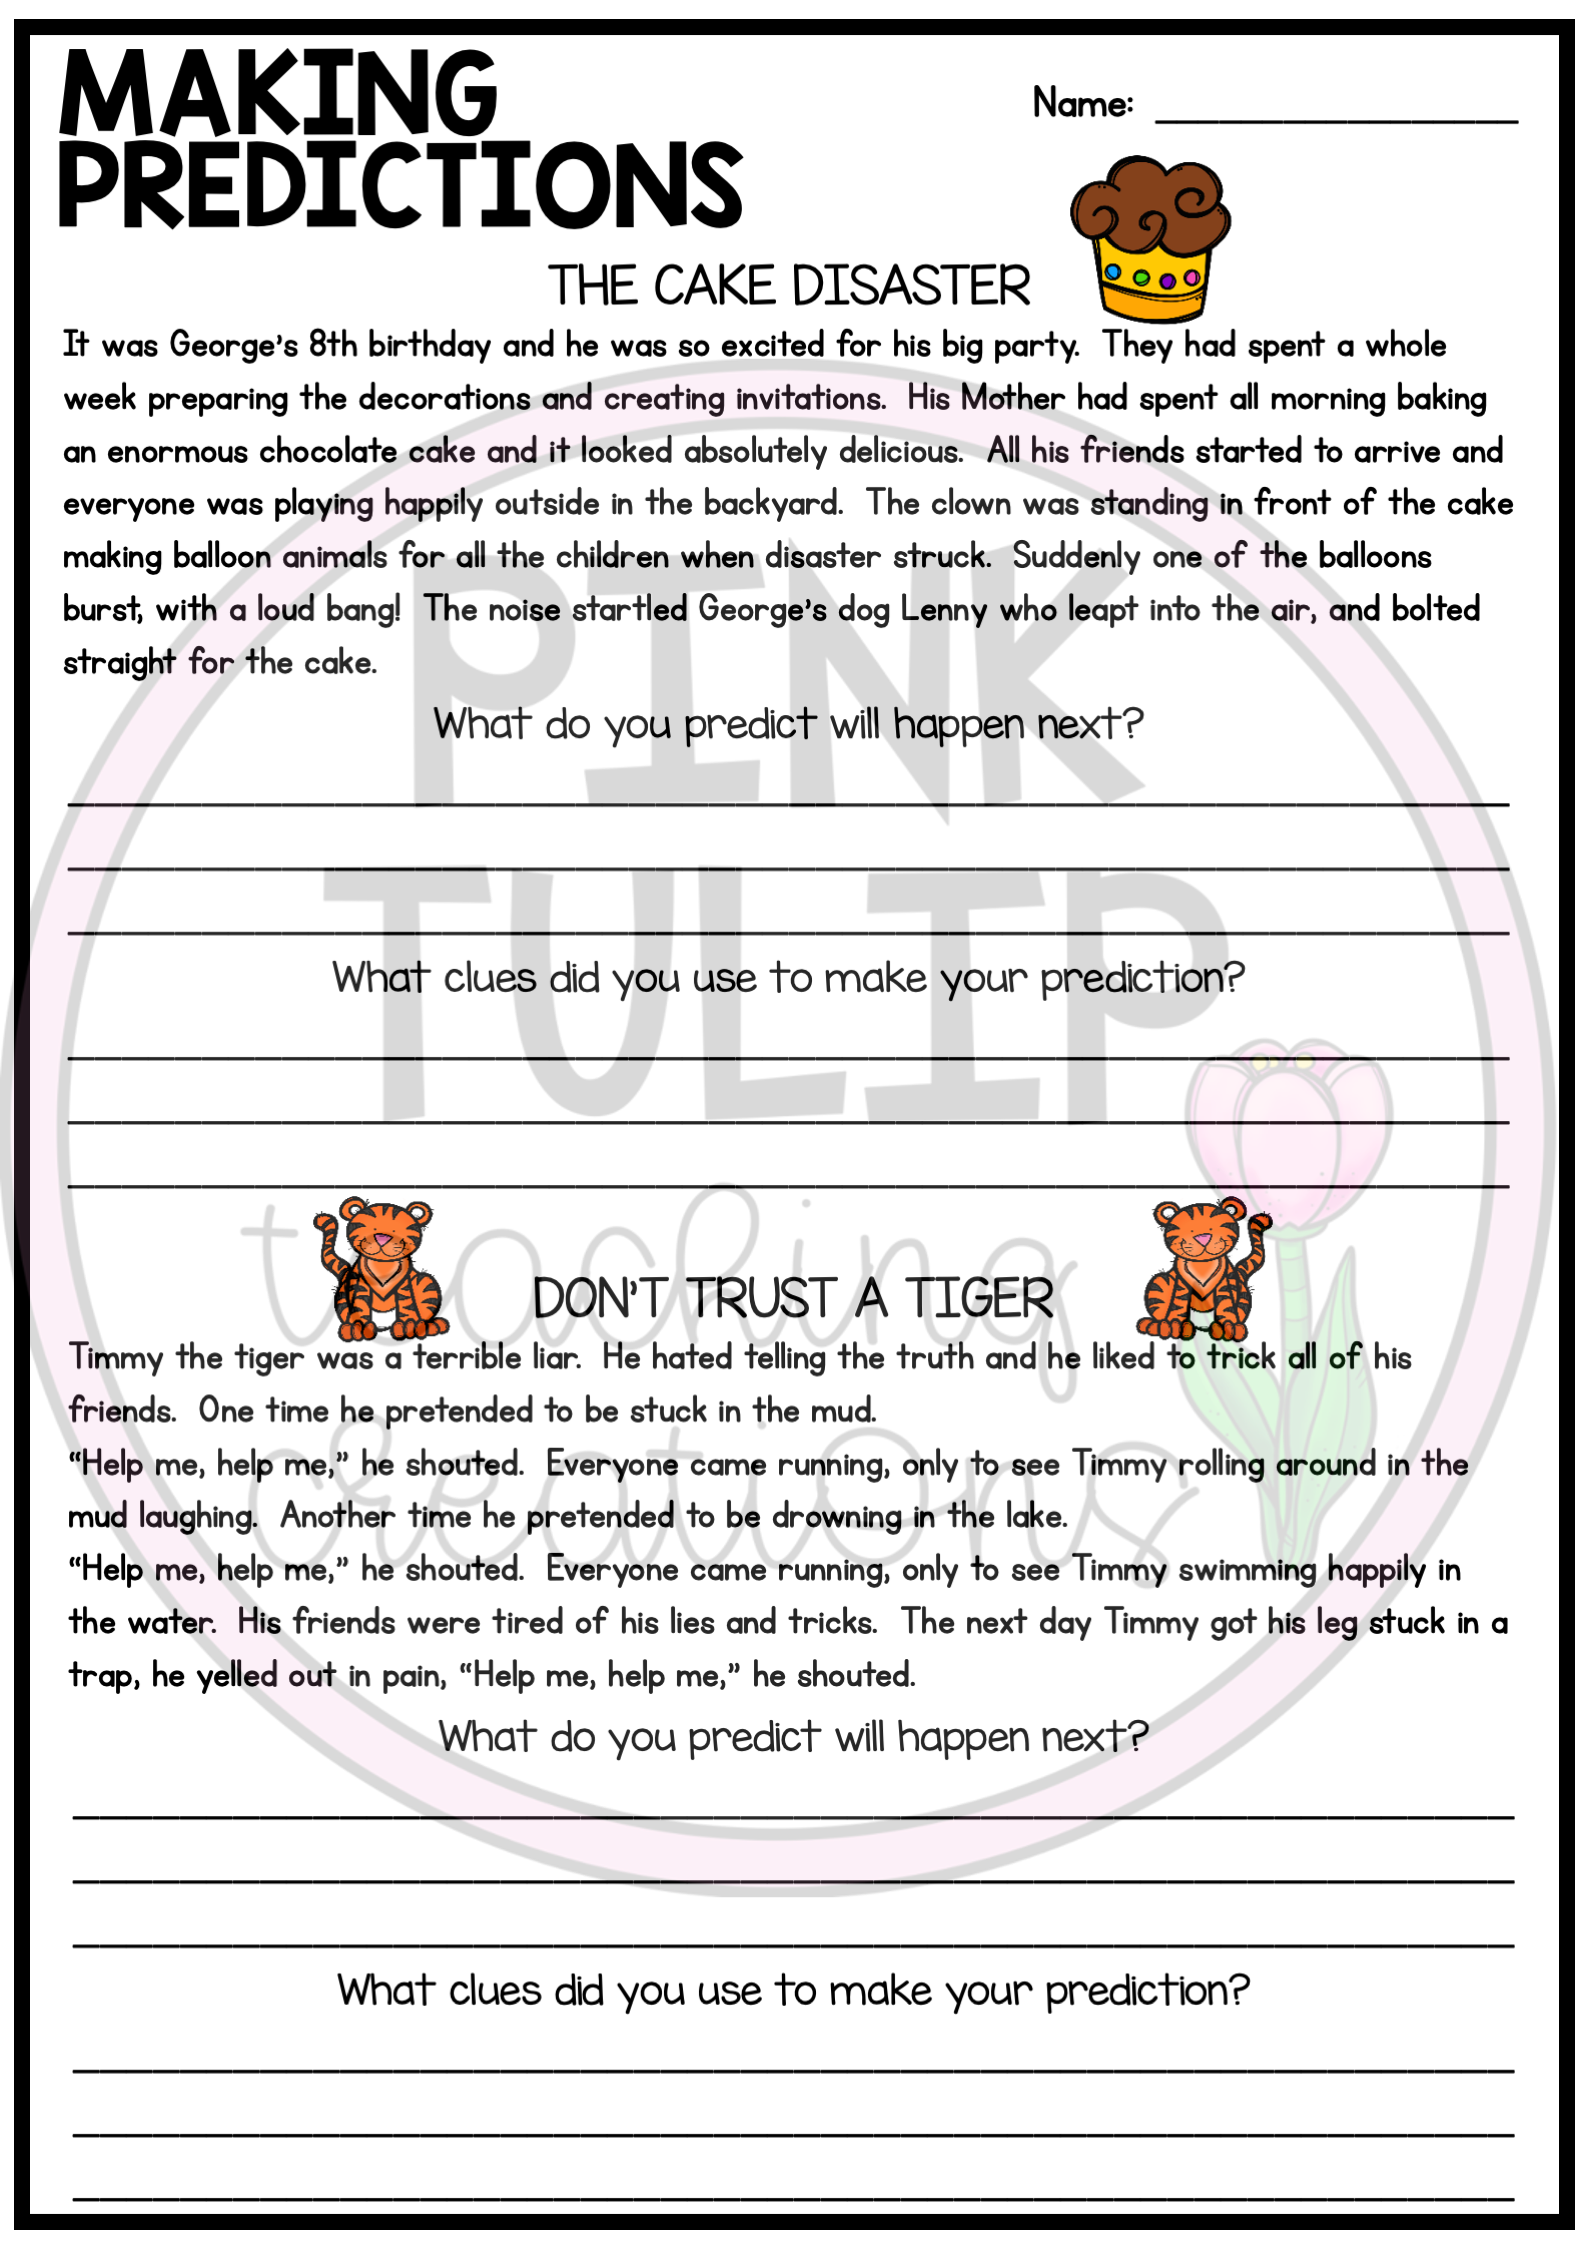 Making Predictions Reading Worksheet Pack Reading Worksheets Summarizing Reading Reading Comprehension Resources [ 2249 x 1589 Pixel ]